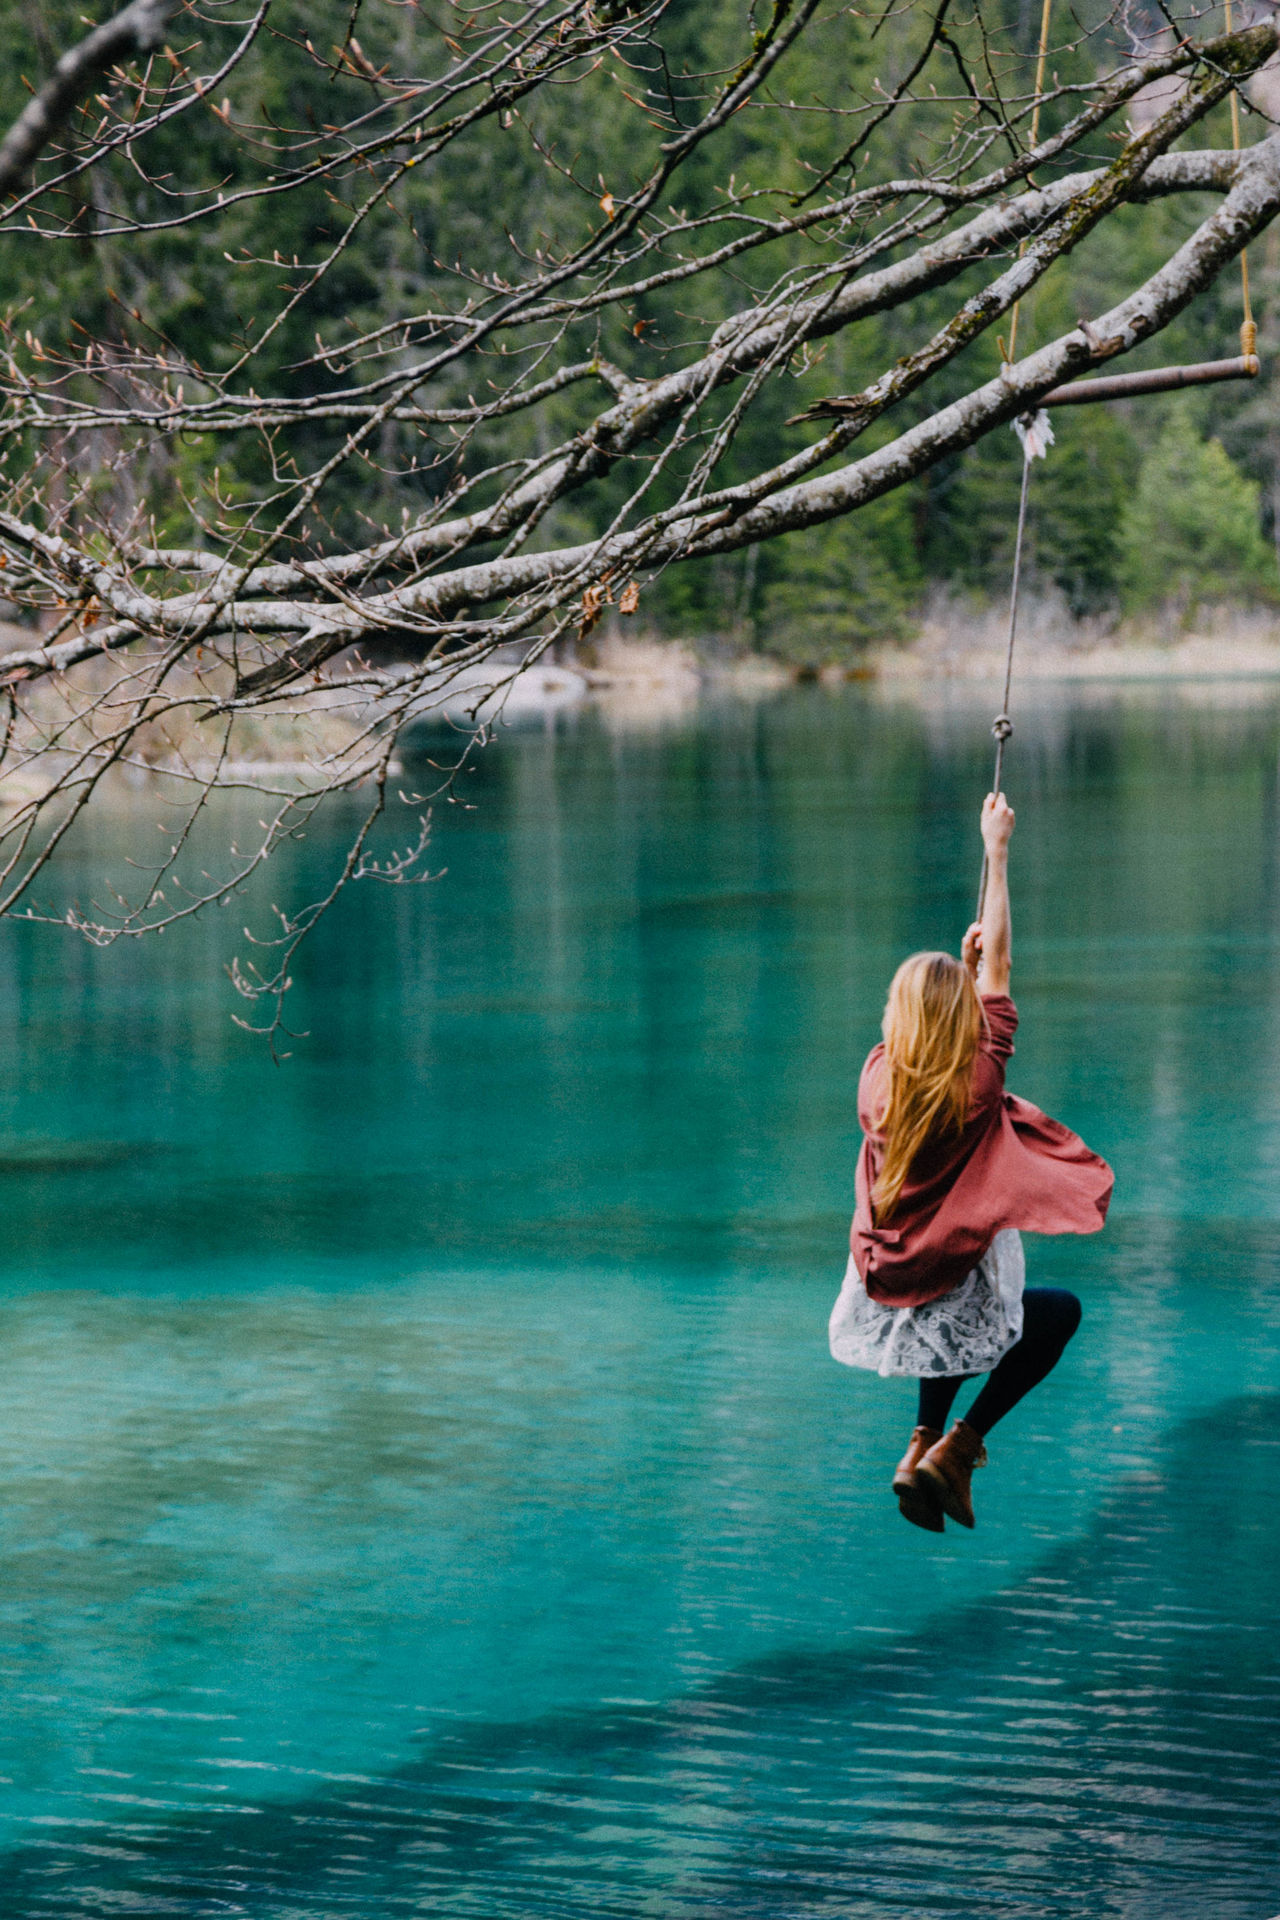 Beauty In Nature Outdoors Nature Tranquil Scene Alone Scenic Switzerland Water Woman Roadtrip Weekend Trip Weekend Adventure Mountains Mountain Lake Lake Hike Swing Dare Tranquility Young People Fun Lakeside Trip Traveling